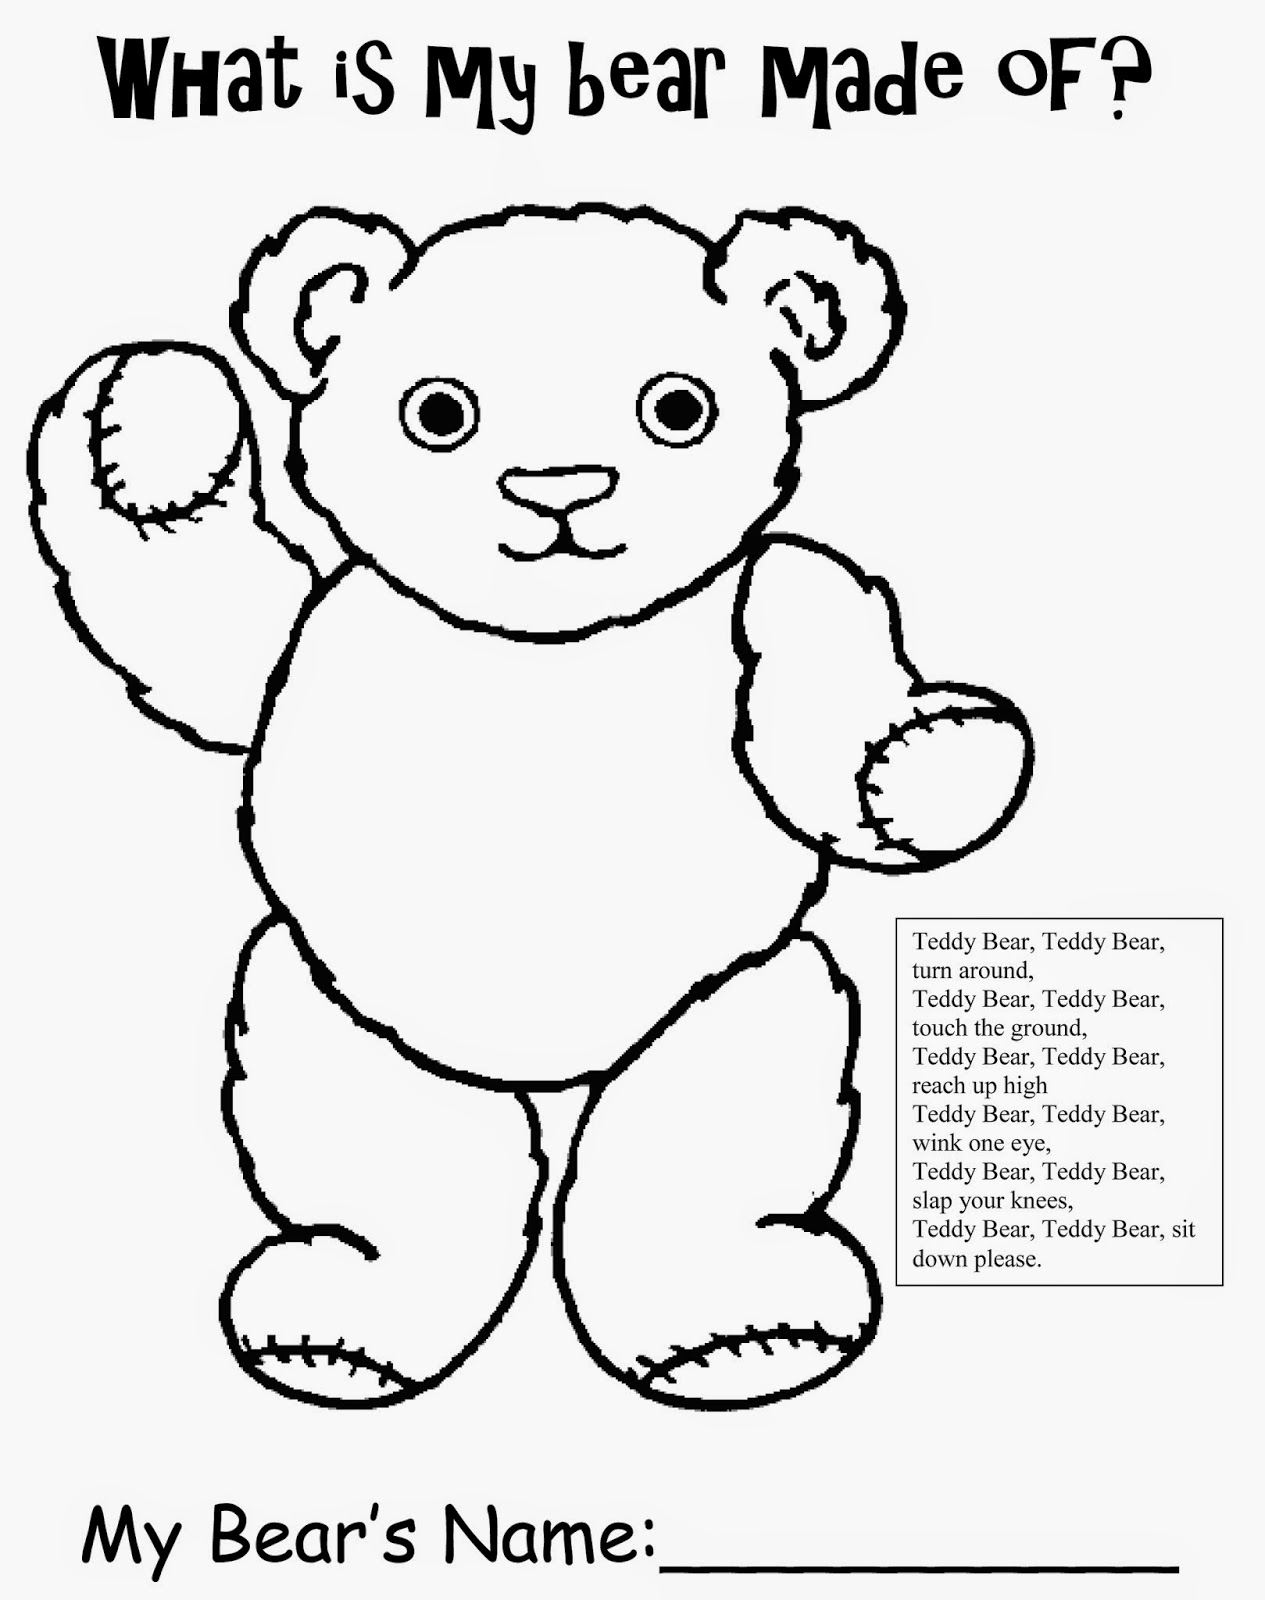 worksheet Teddy Bear Worksheets inspiration organization wheres my teddy free worksheet what is bear made of printable